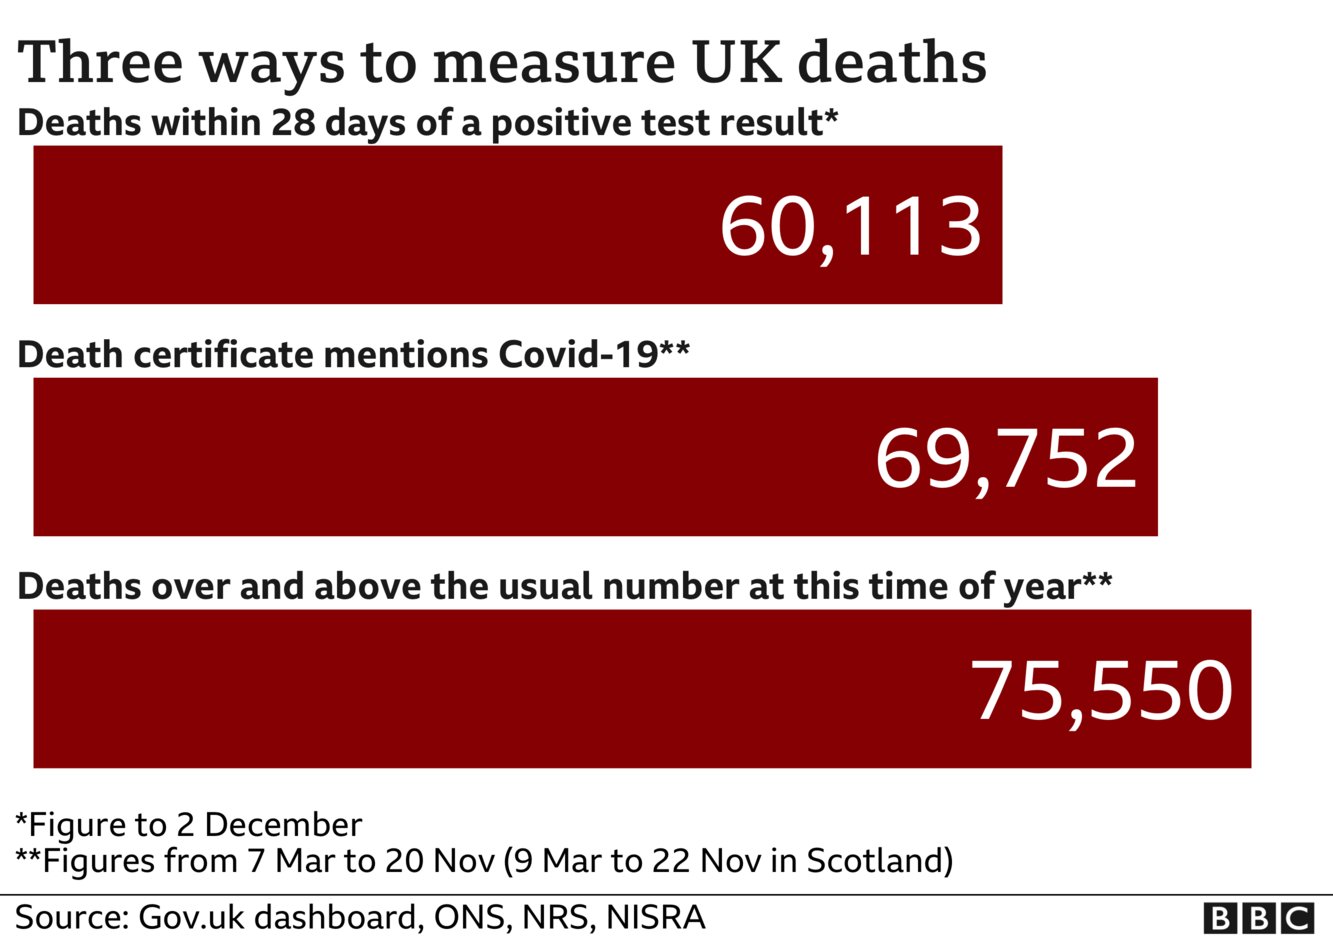 Chart shows three ways of measuring coronavirus deaths - government statistics count everyone who dies within 28 days of a positive test, the total is now 60,113. ONS stats include everyone where coronavirus was mentioned on the death certificate and that total is now 69,752. The final total includes all excess deaths over and above the usual number and that is now 75,550